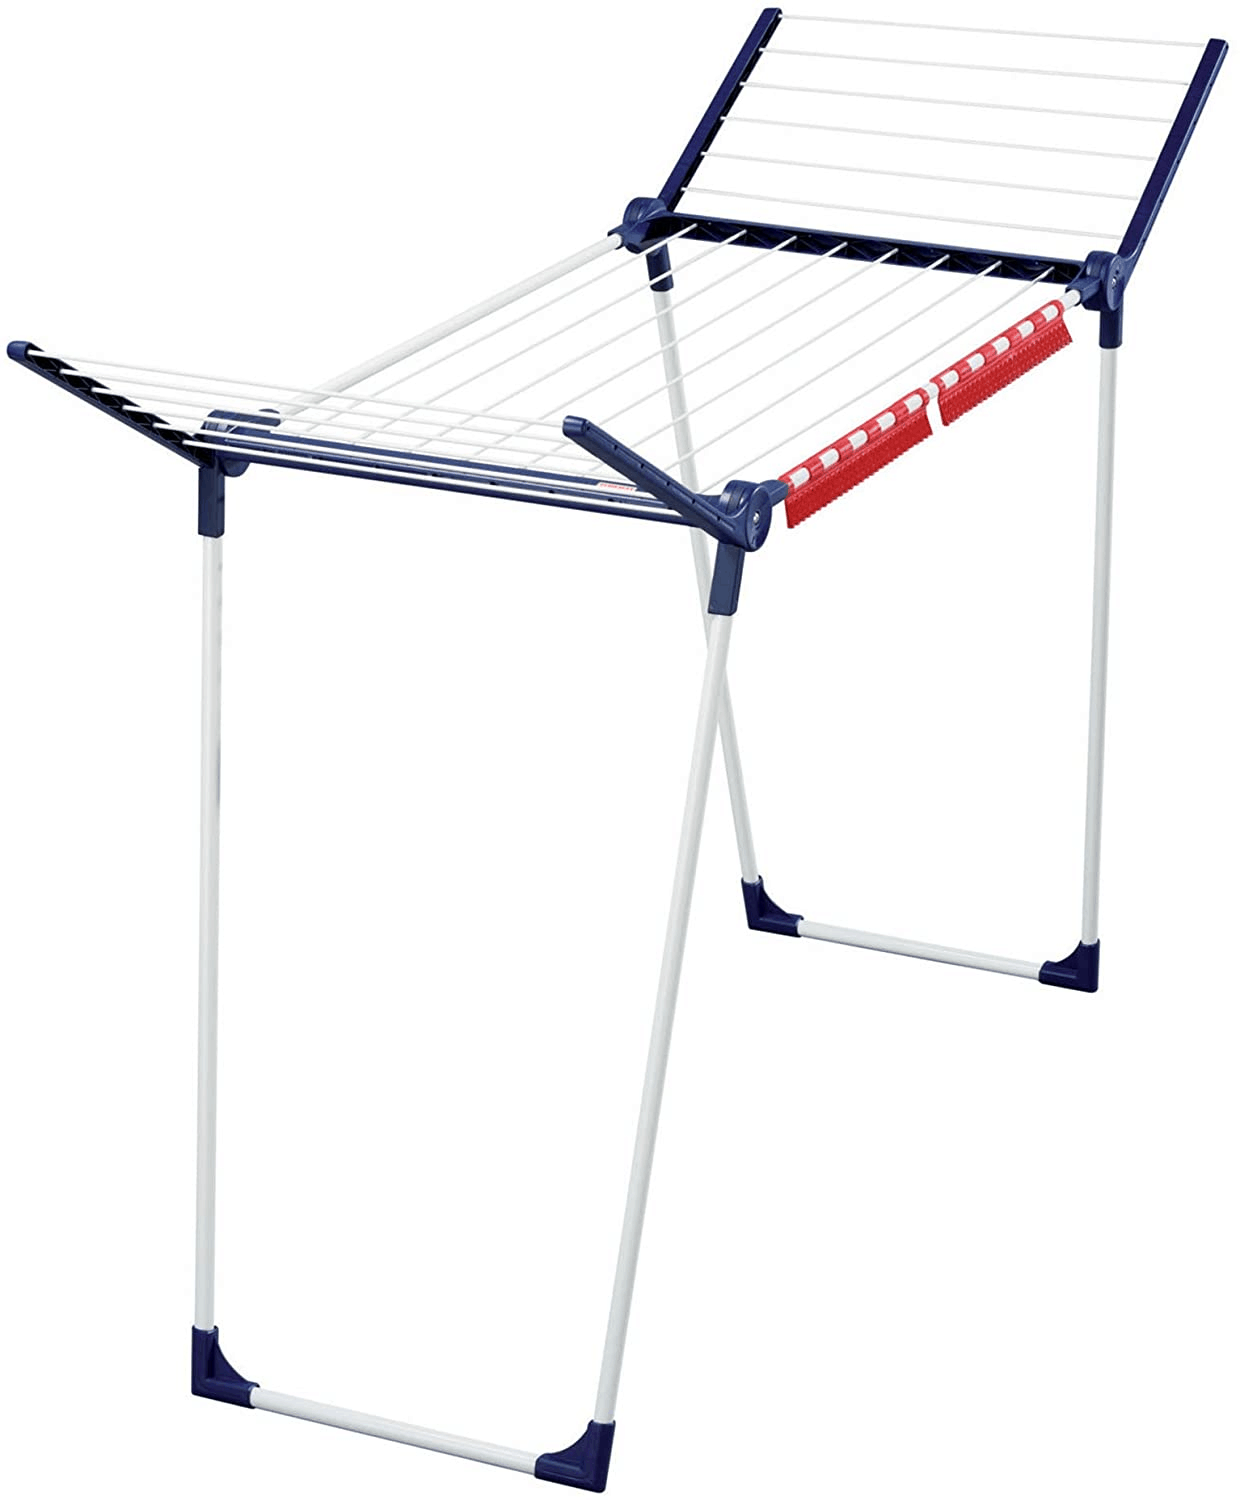 Best Foldable Clothes Drying Rack in Singapore